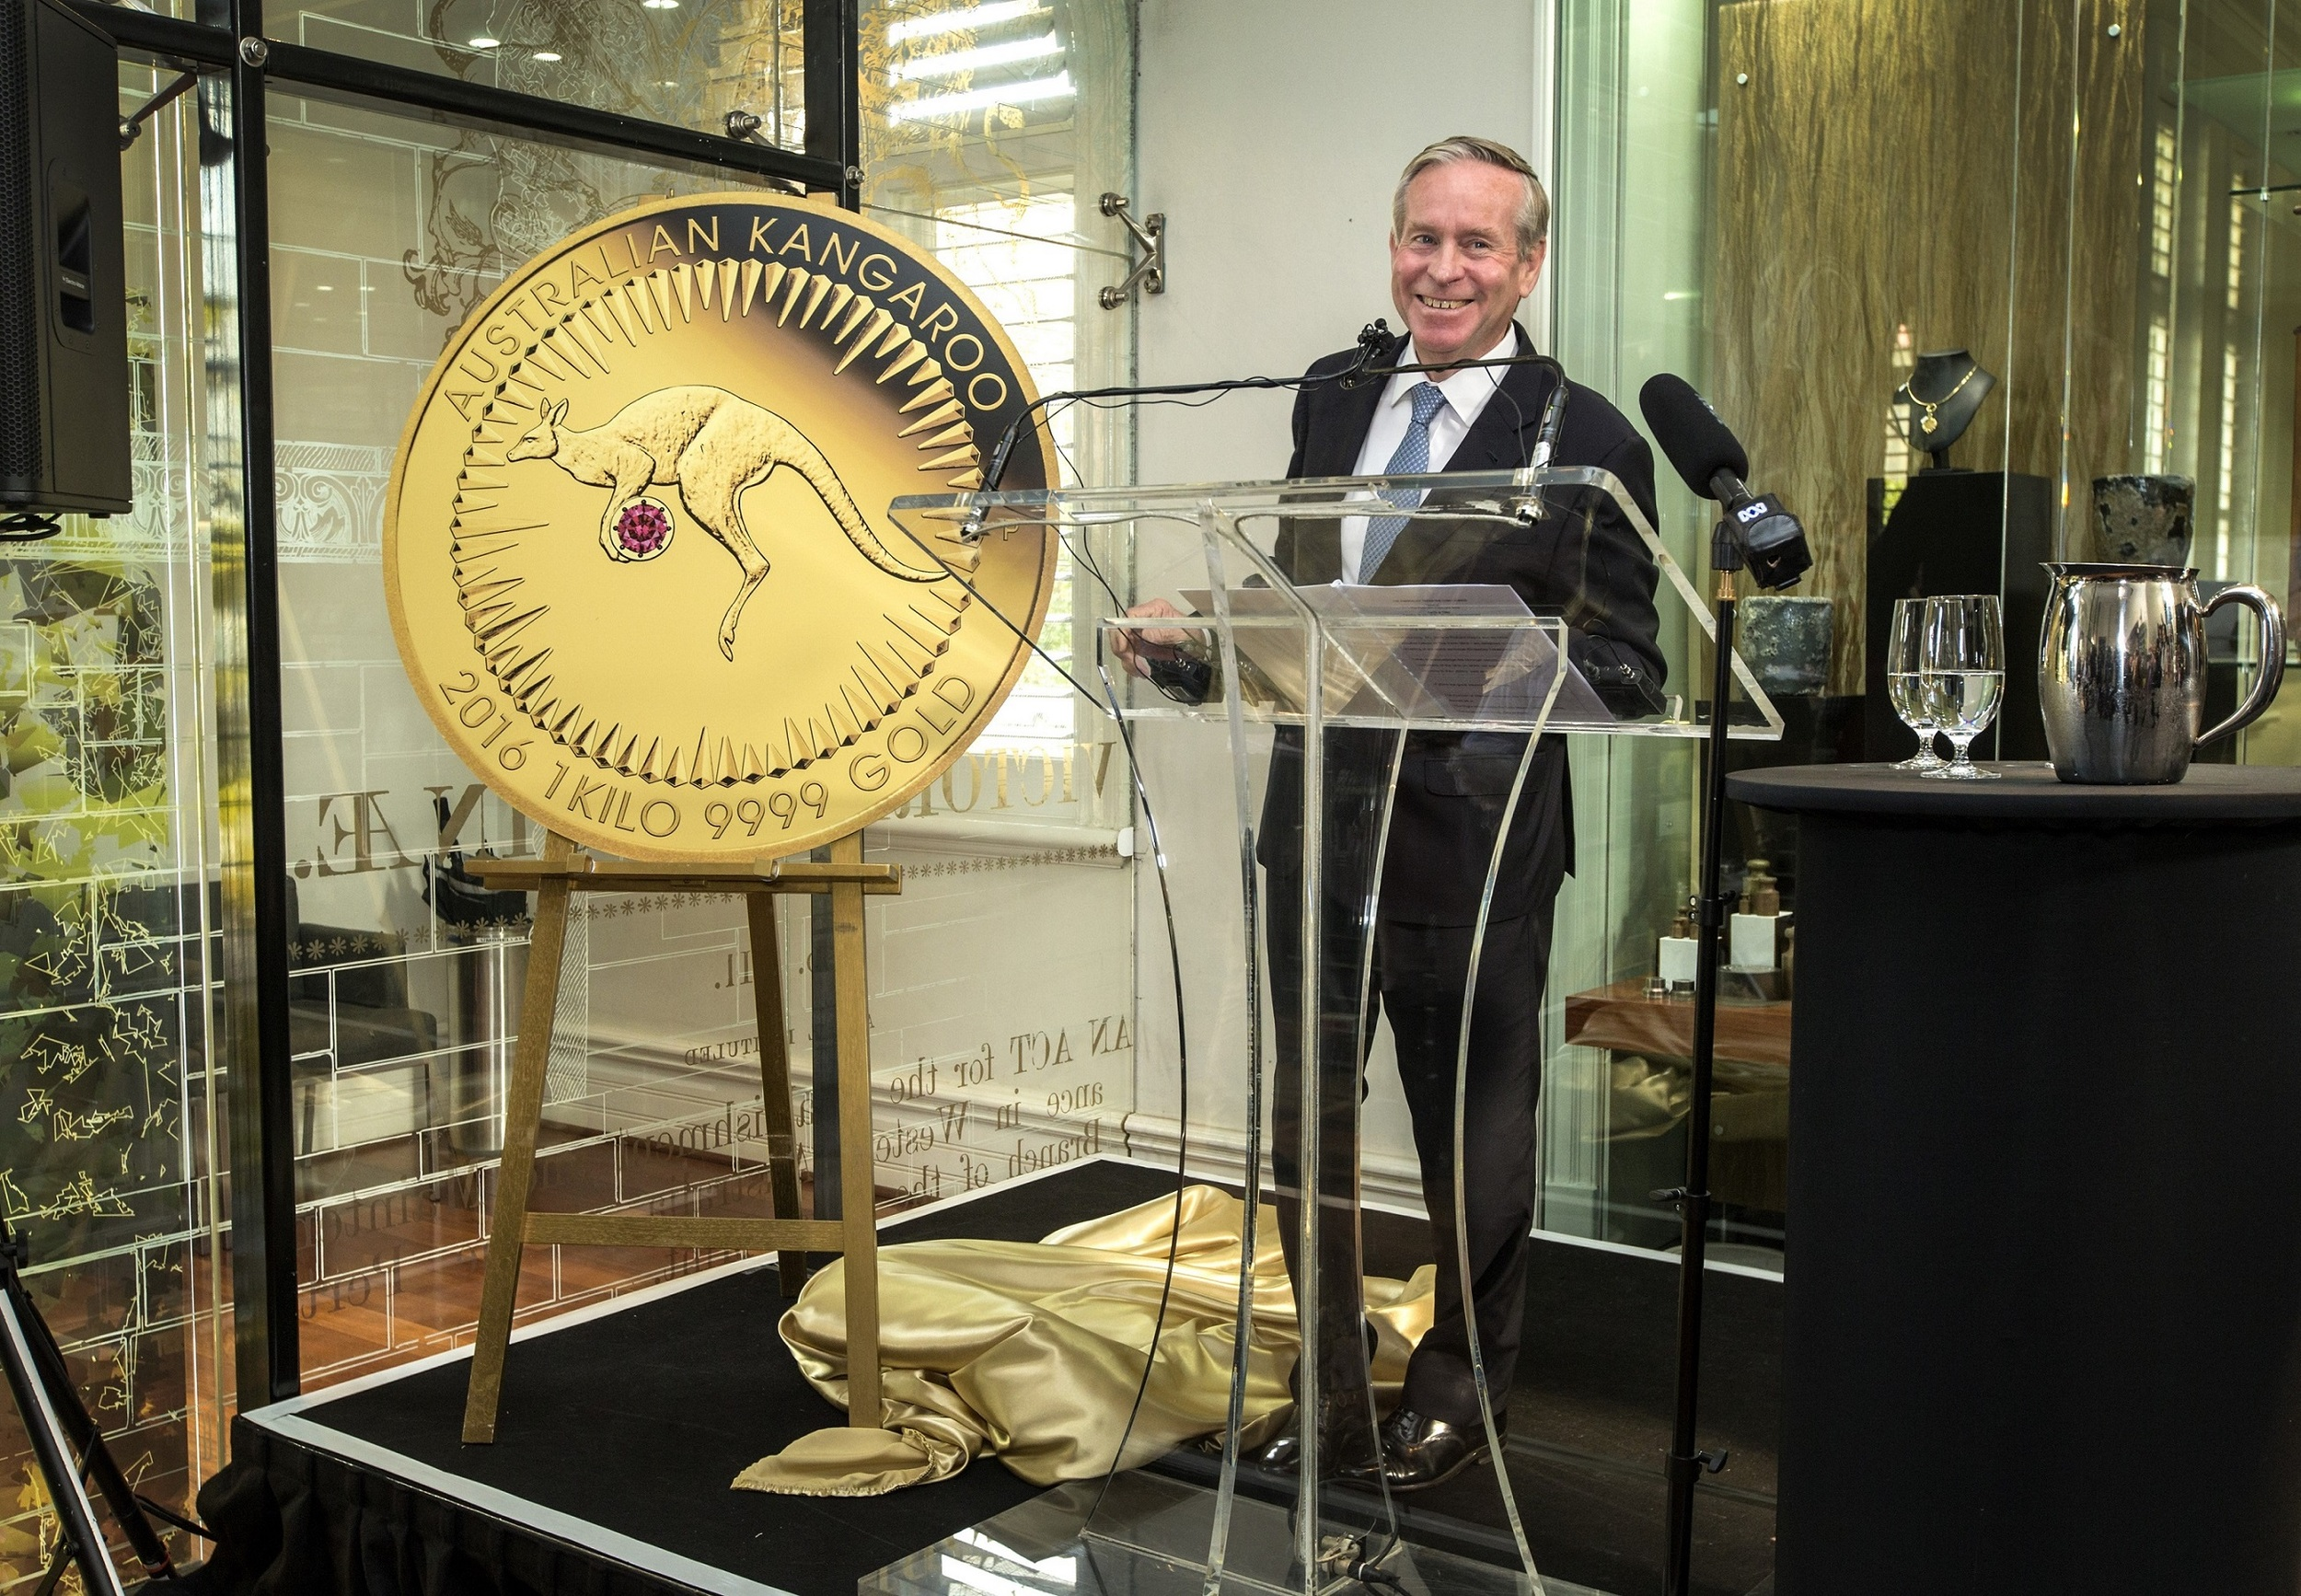 The Premier of Western Australia, the Honourable Colin Barnett MLA unveiling the Kimberley Treasure coin